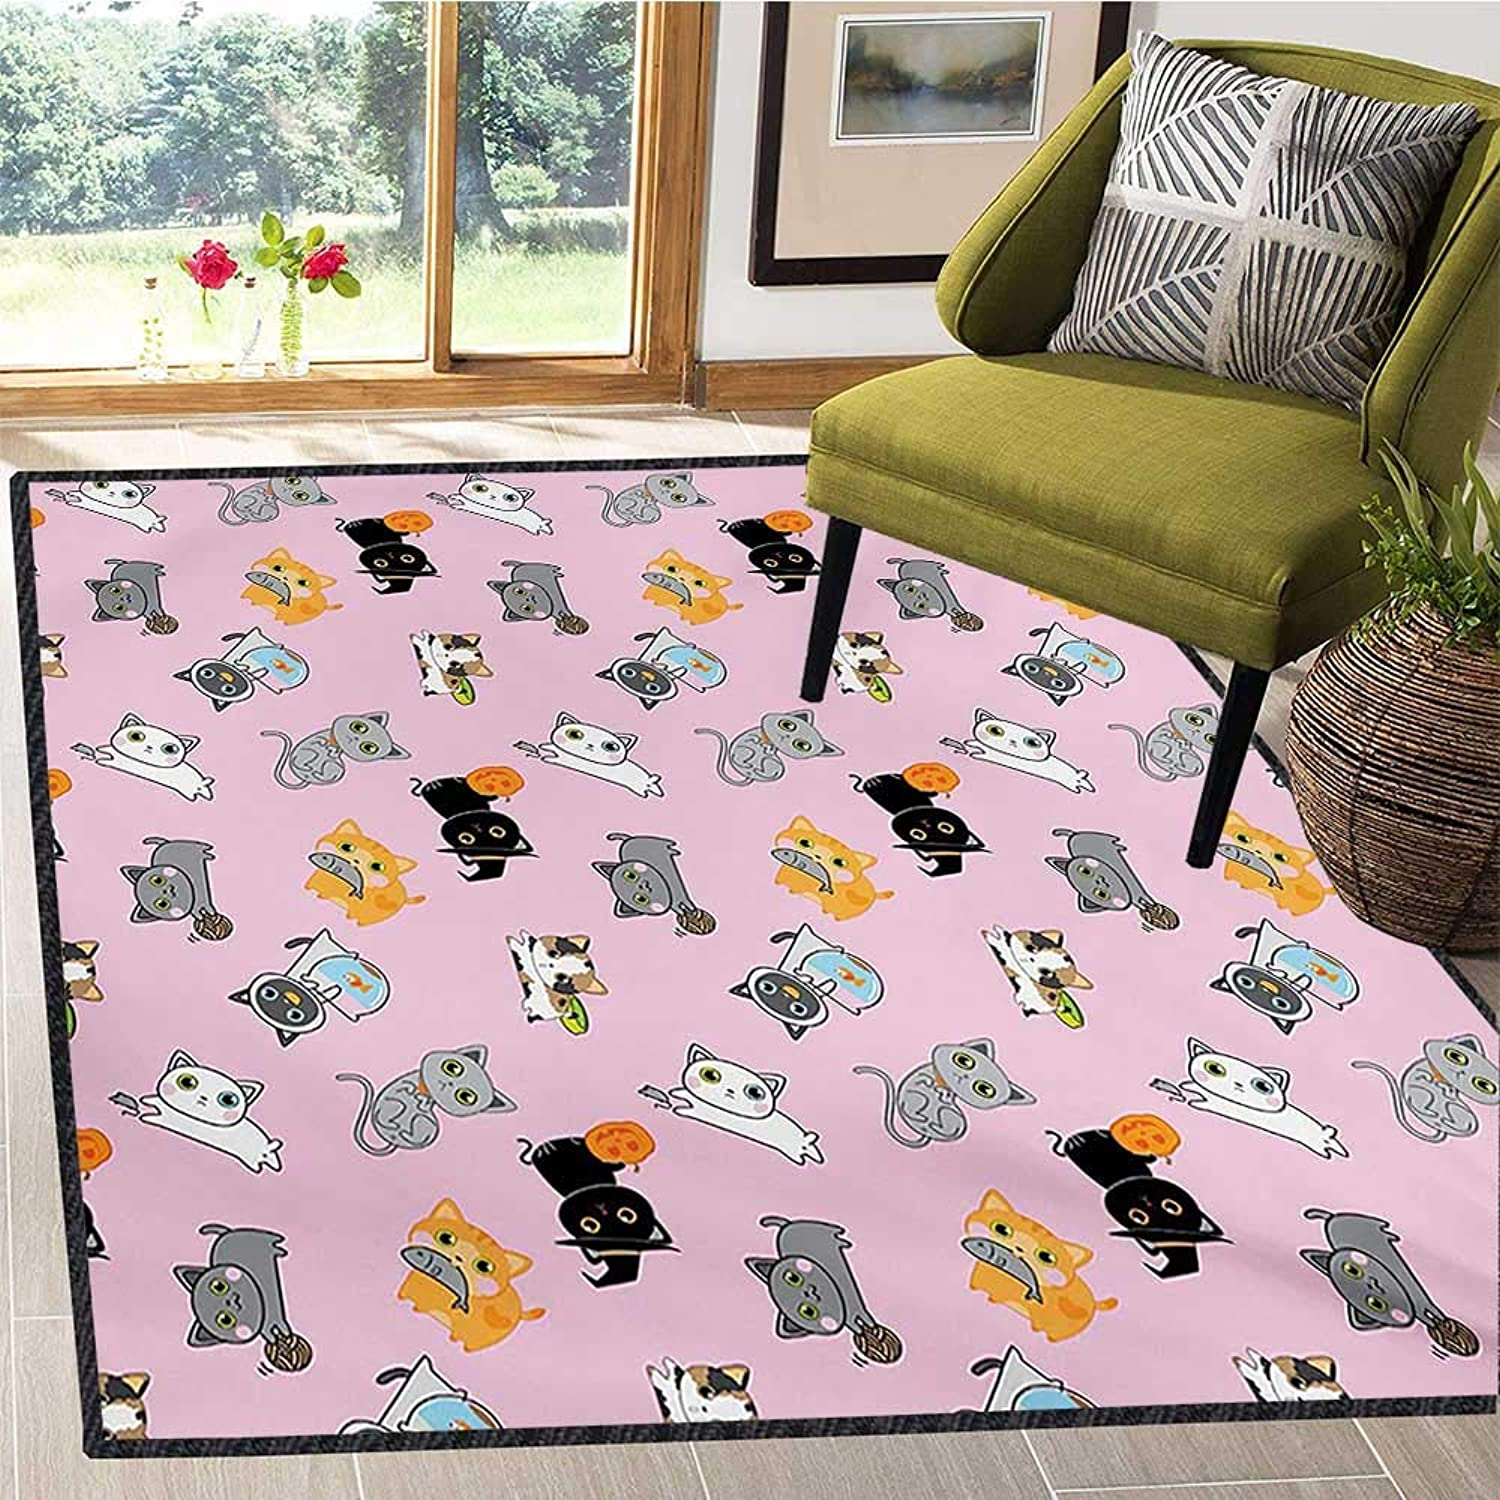 Cat, Area Rug Door Mat, colorful Cute Kittens Playing with Fish Mice and Yarnball Different Breeds of Feline, Door Mats for Inside Non Slip Backing 6x7 Ft Multicolor